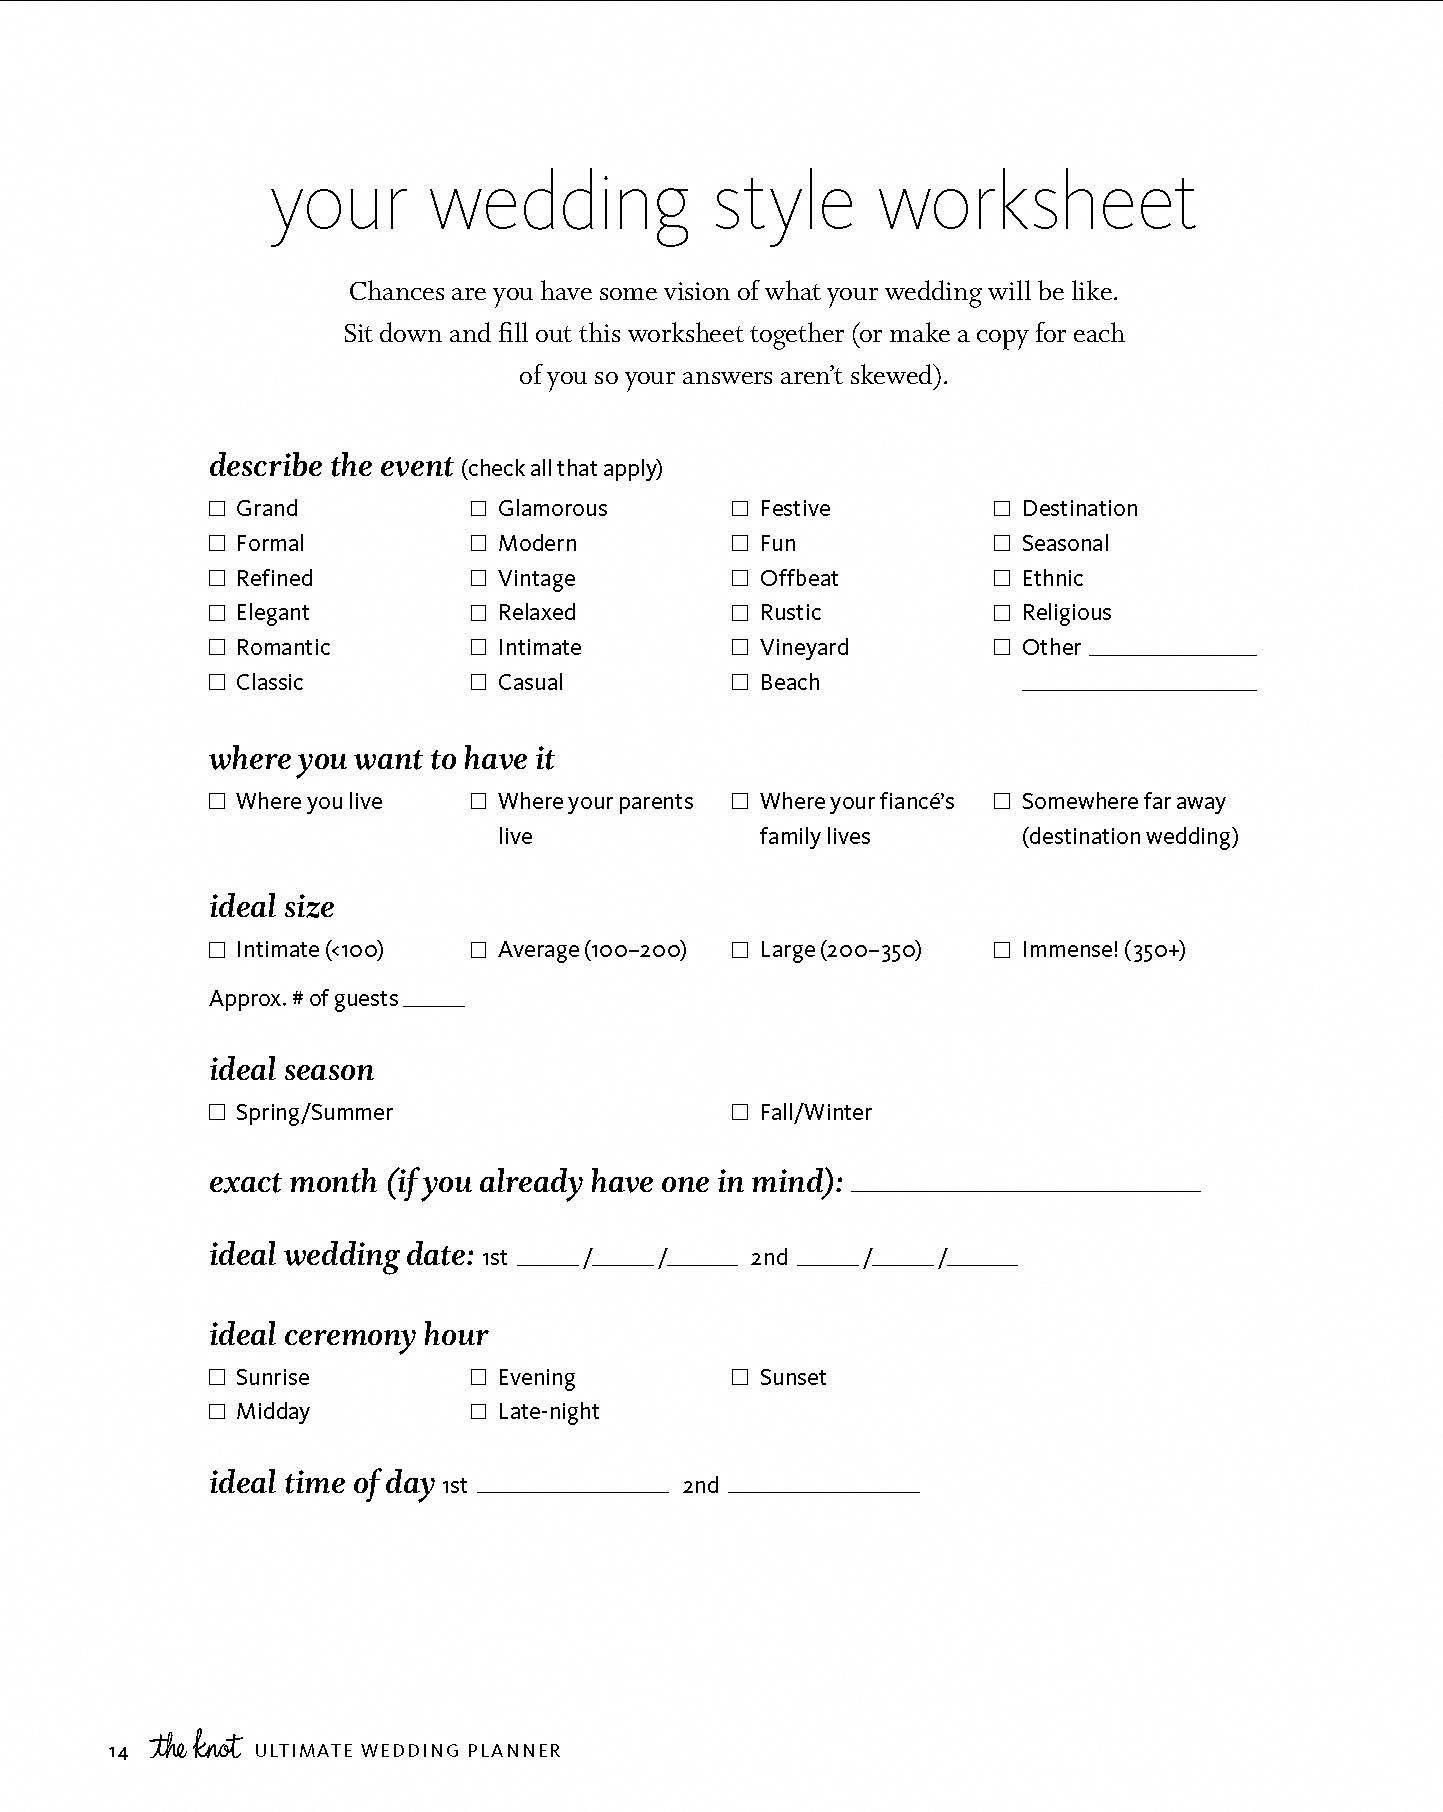 Reprinted From The Knot Ultimate Wedding Planner